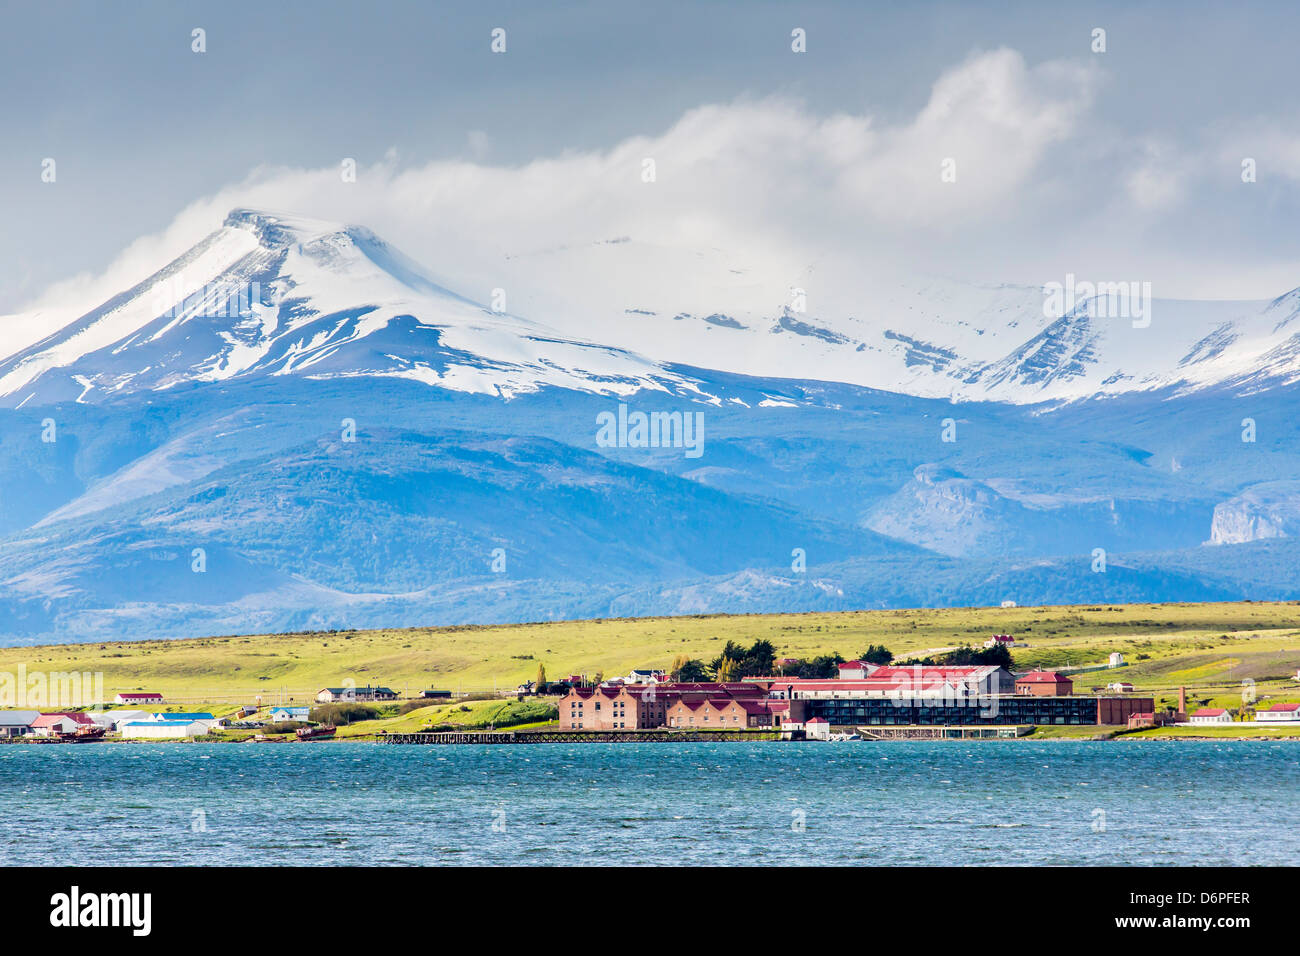 The harbour town of Puerto Natales, Patagonia, Chile, South America - Stock Image